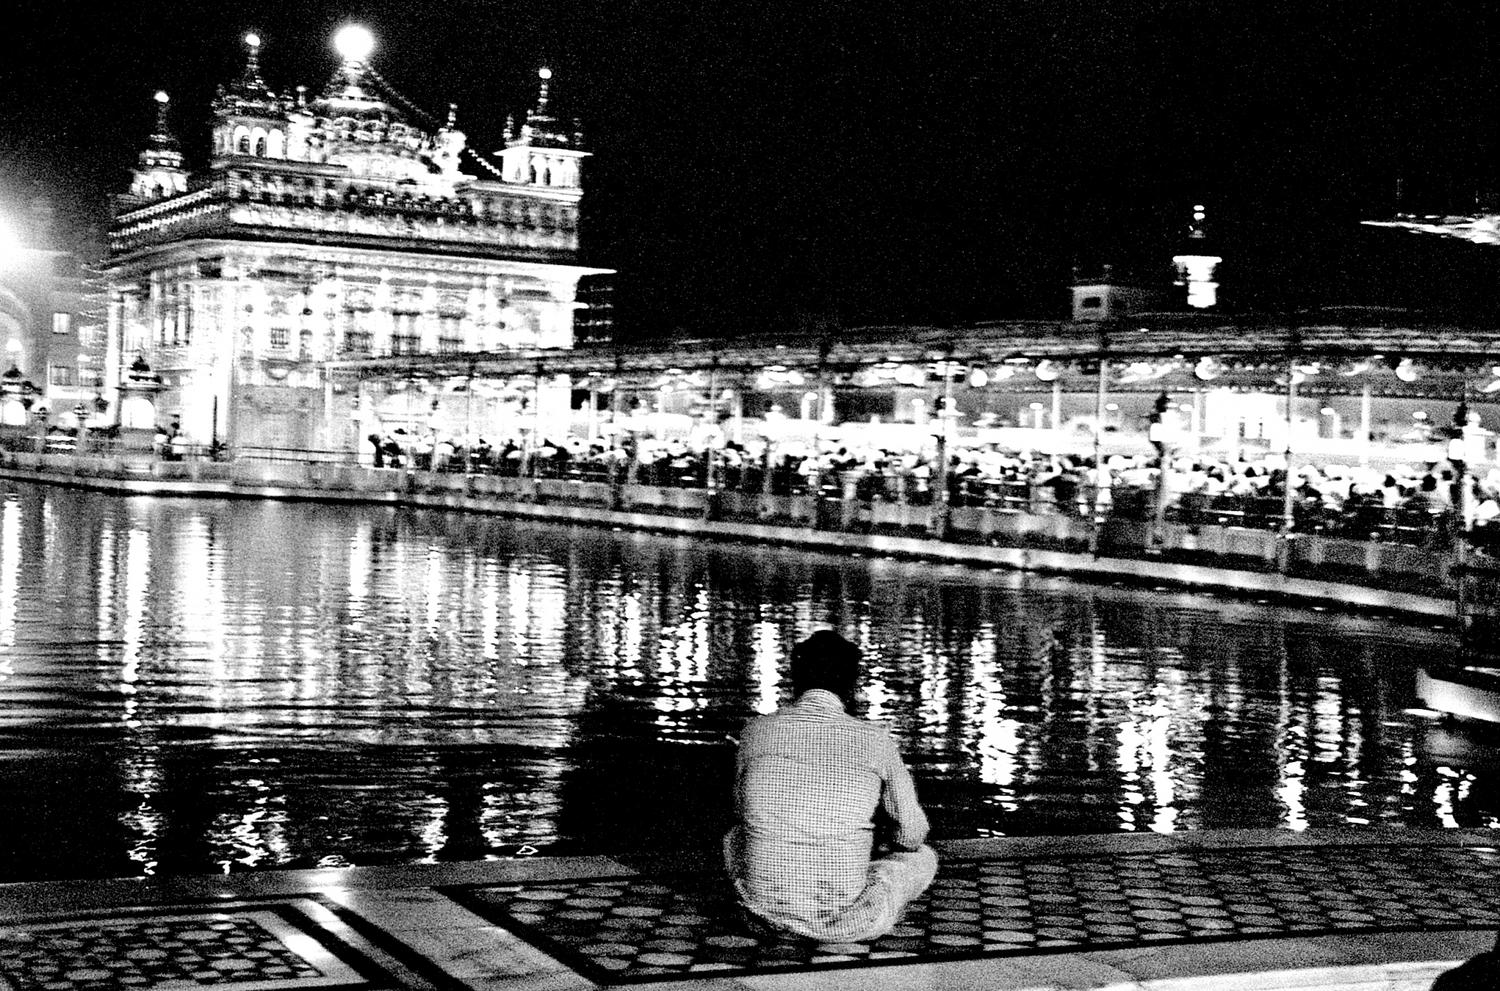 Awaiting Sunrise at the Golden Temple, Amritsar 2016   Edition 1 of 2